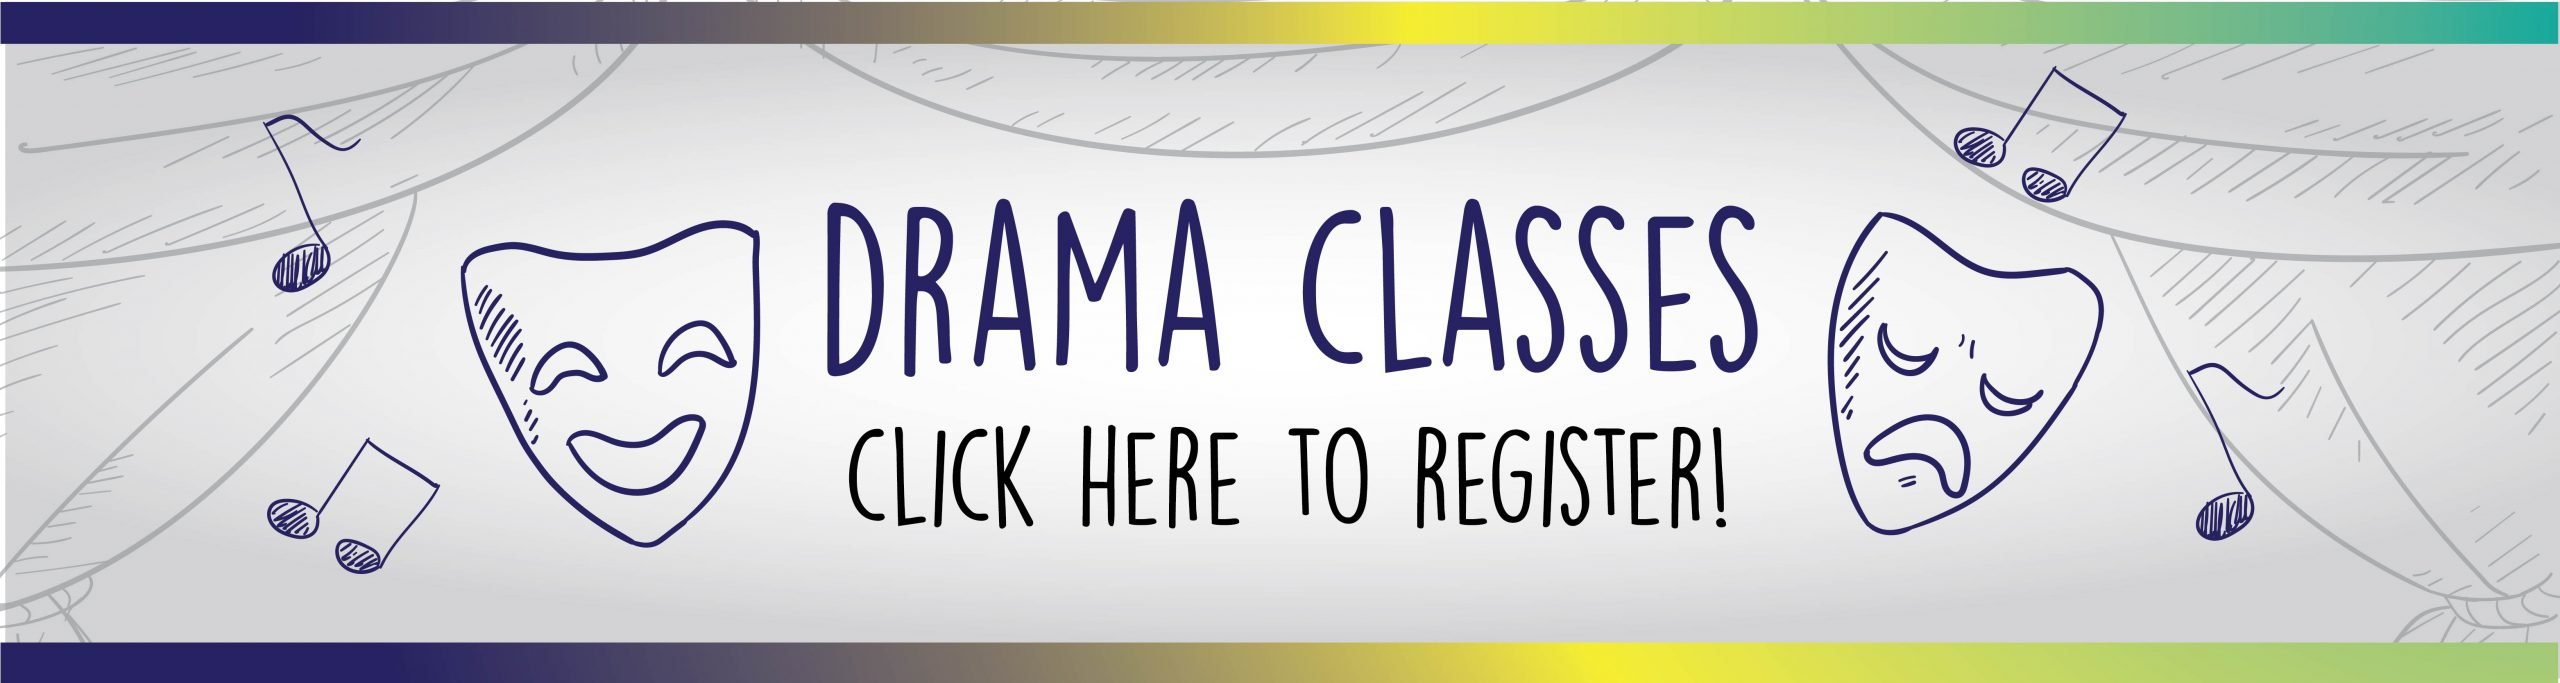 DramaClasses_WebsiteBanner_2020-01